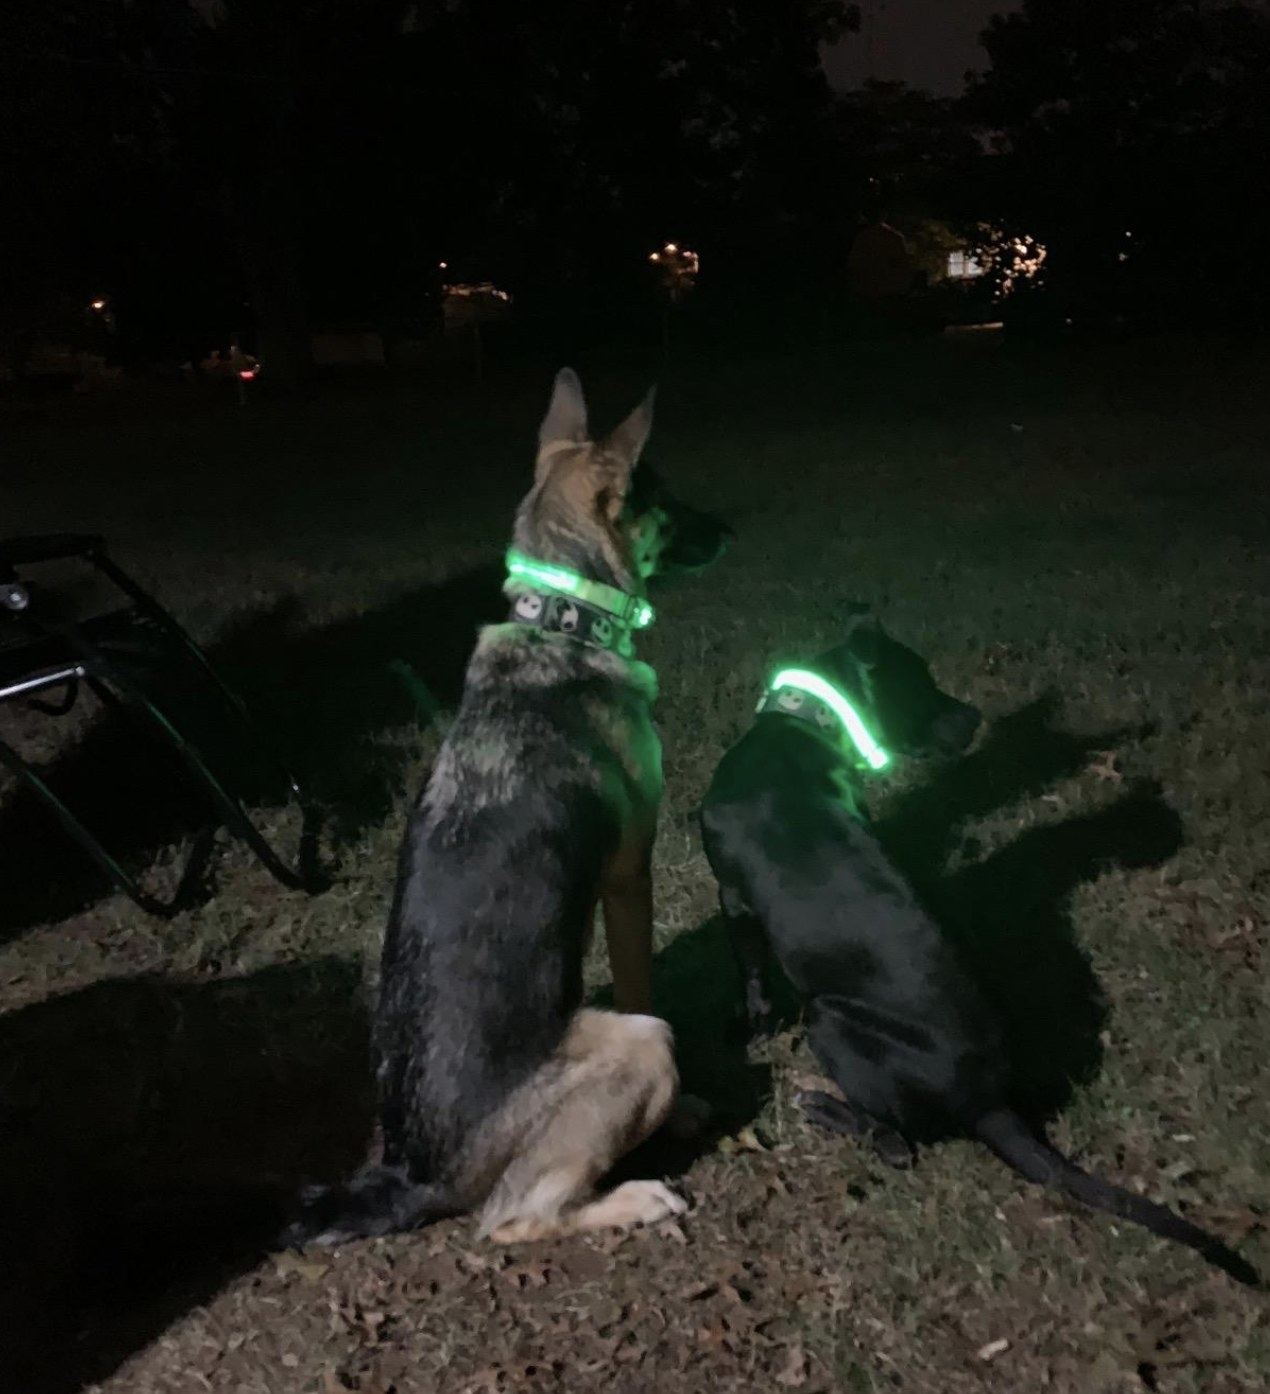 two dogs wearing LED collars